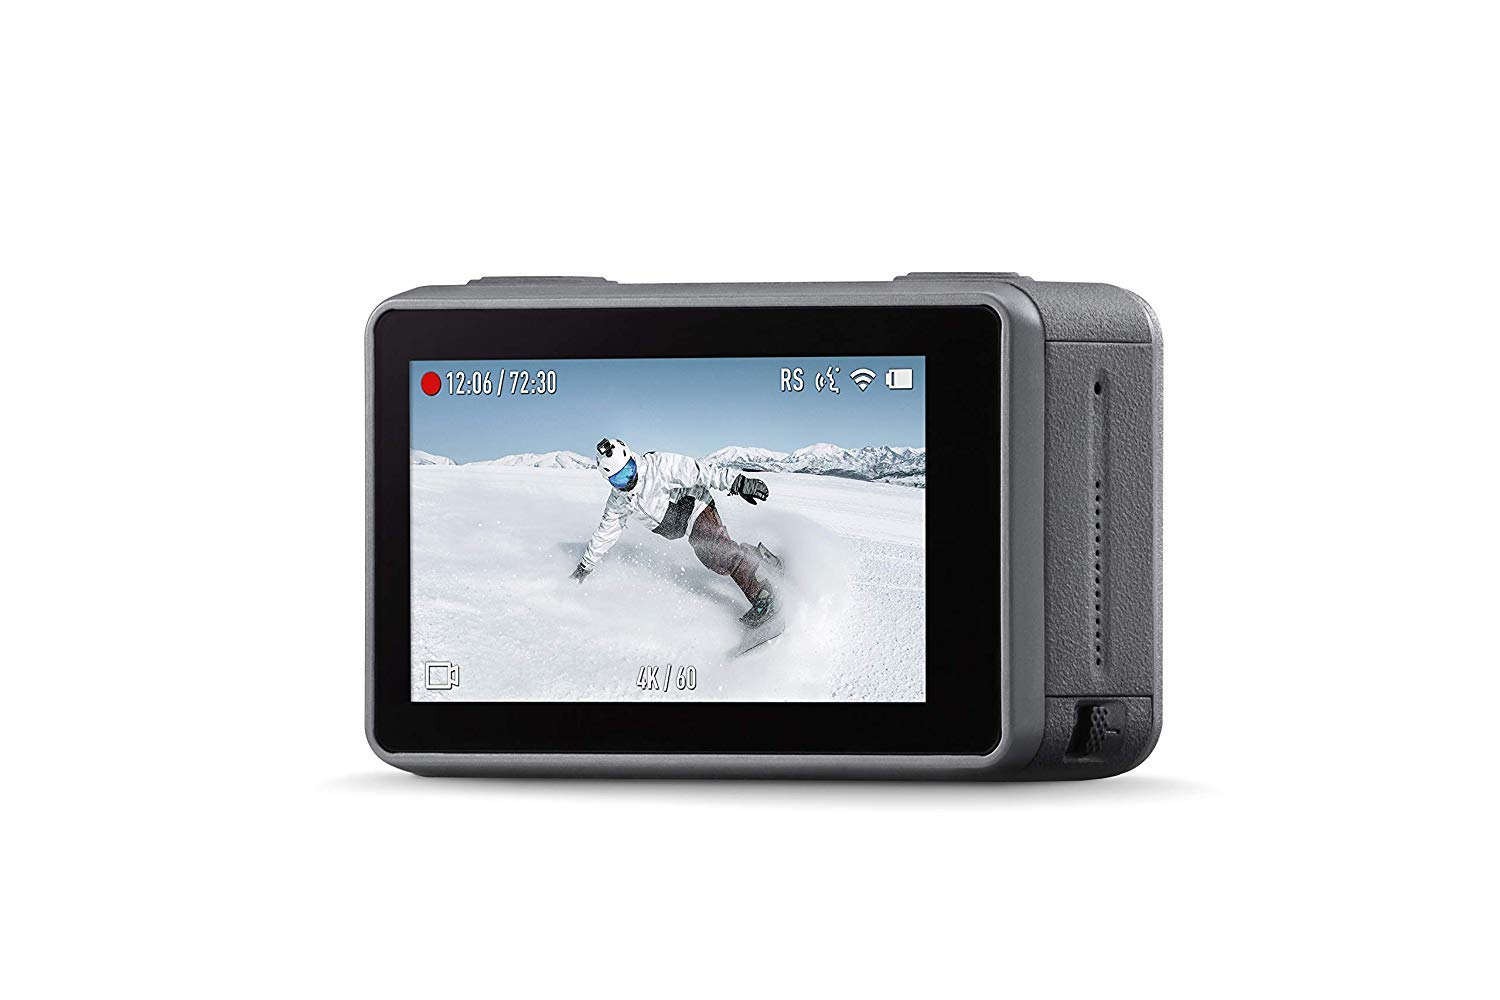 Top 10 Best Chinese Action Camera Reviews in 2021 2